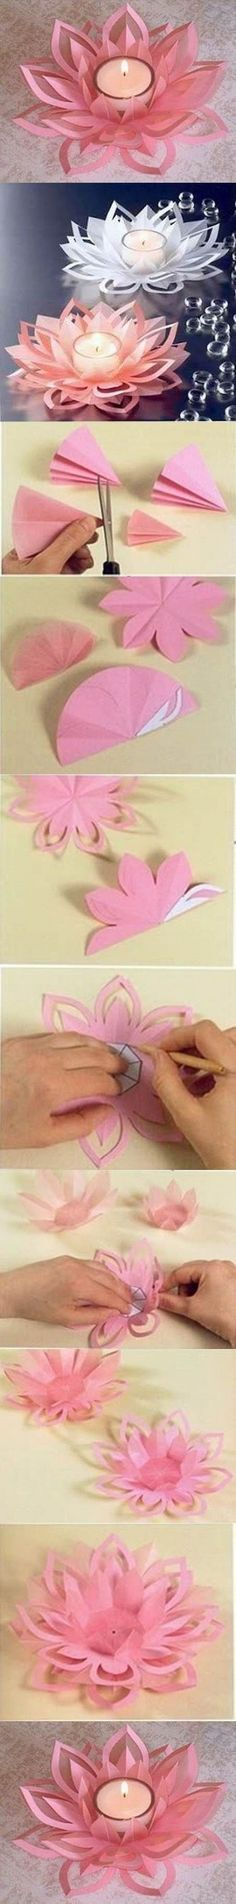 DIY Paper Lotus Candle Holders. More